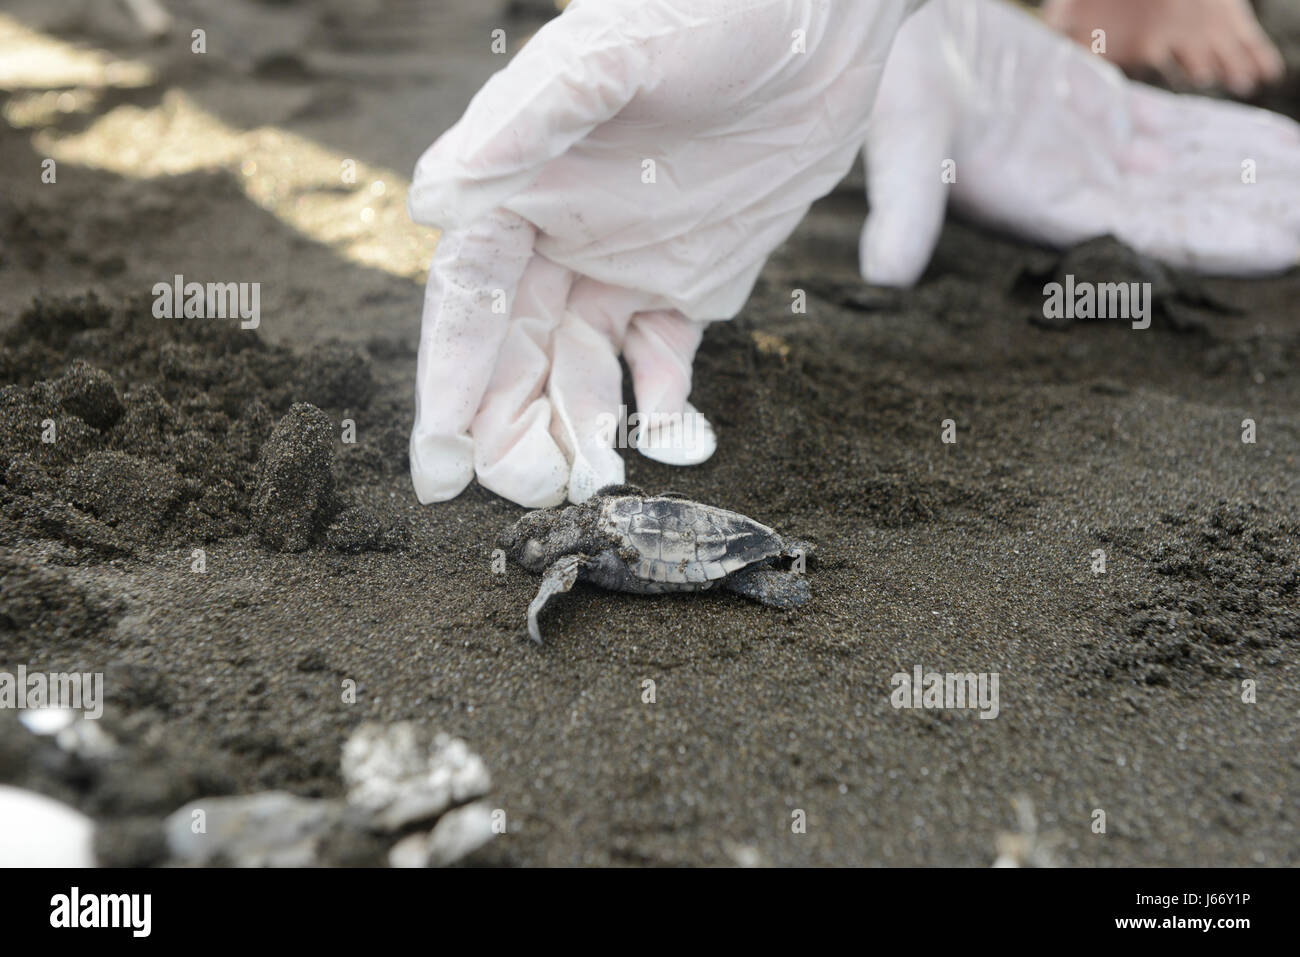 Olive Ridley sea turtle hatchlings (Lepidochelys olivacea) are released at the Punta Mala Wildlife Refuge on Costa - Stock Image